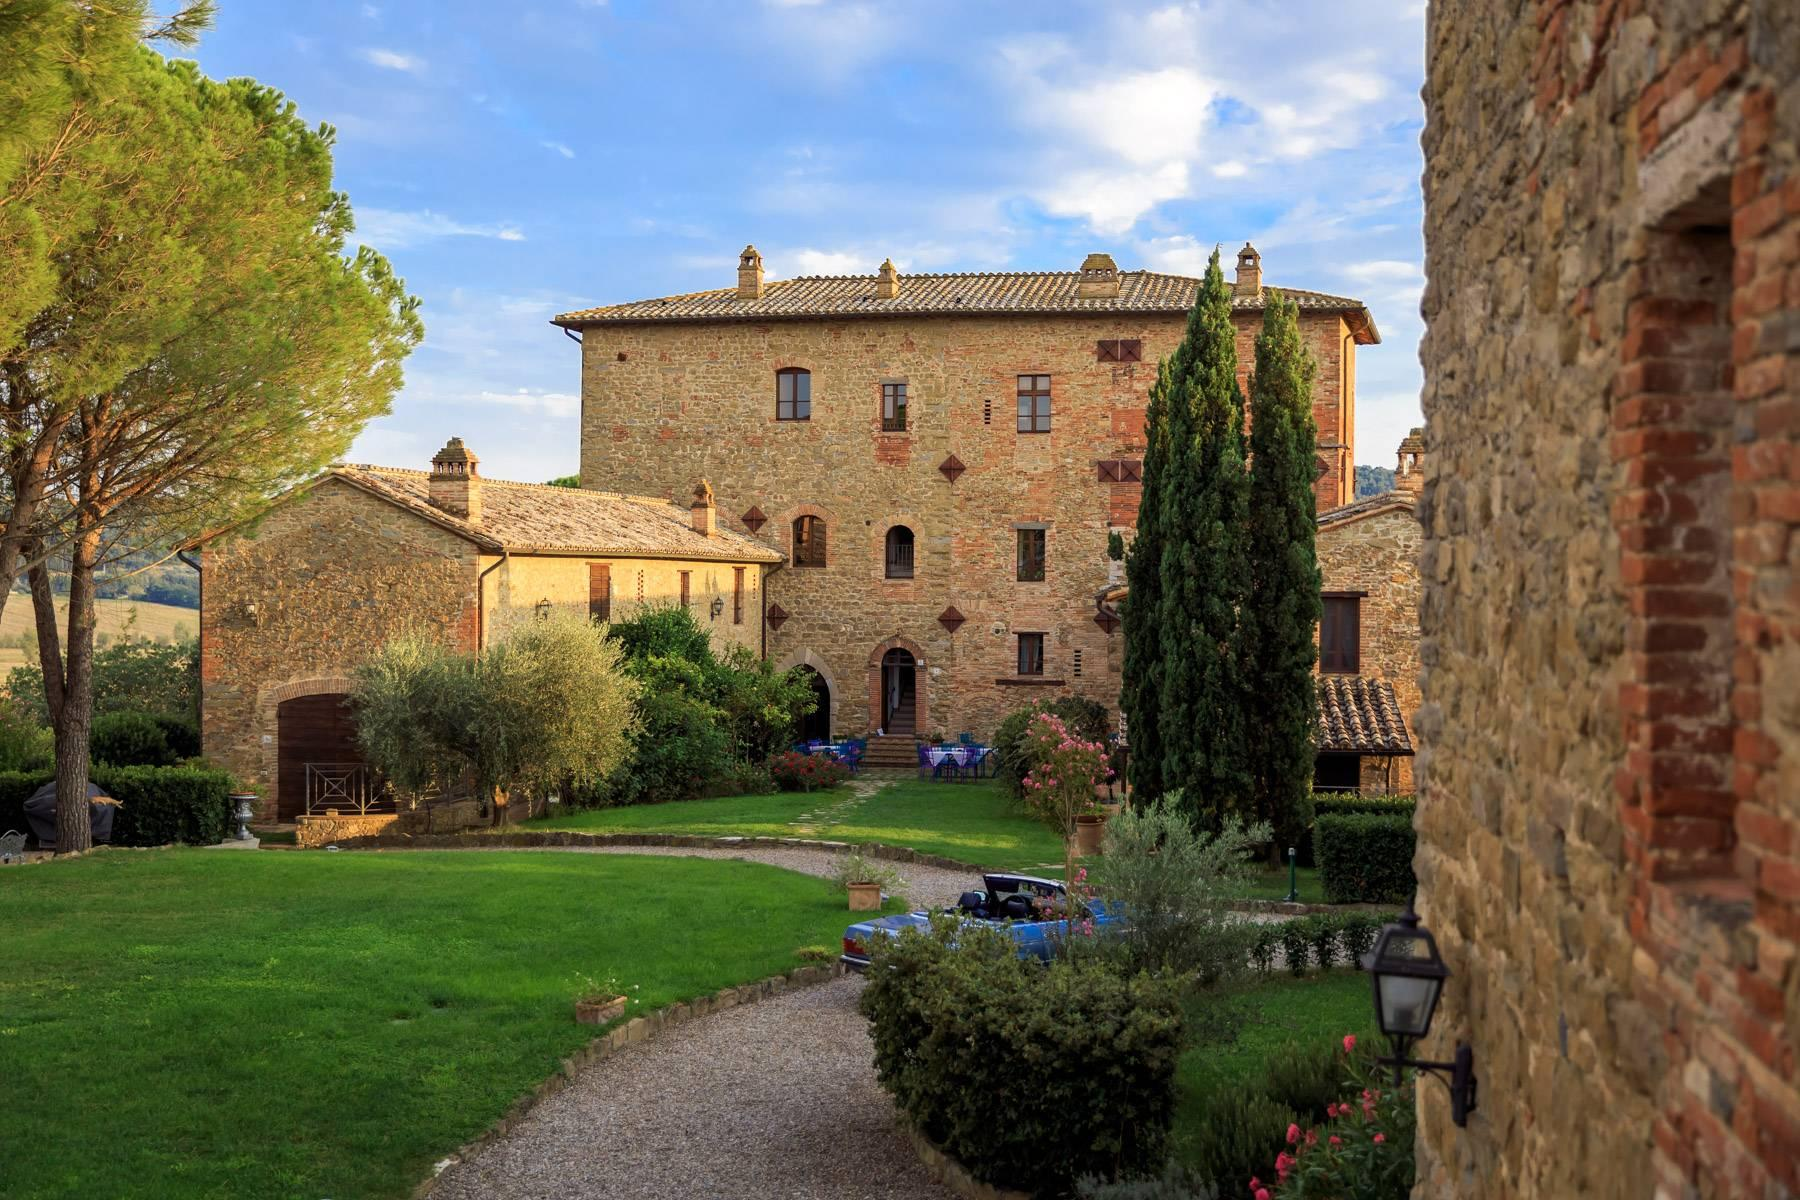 Magnificent castle in the heart of Umbria - 8